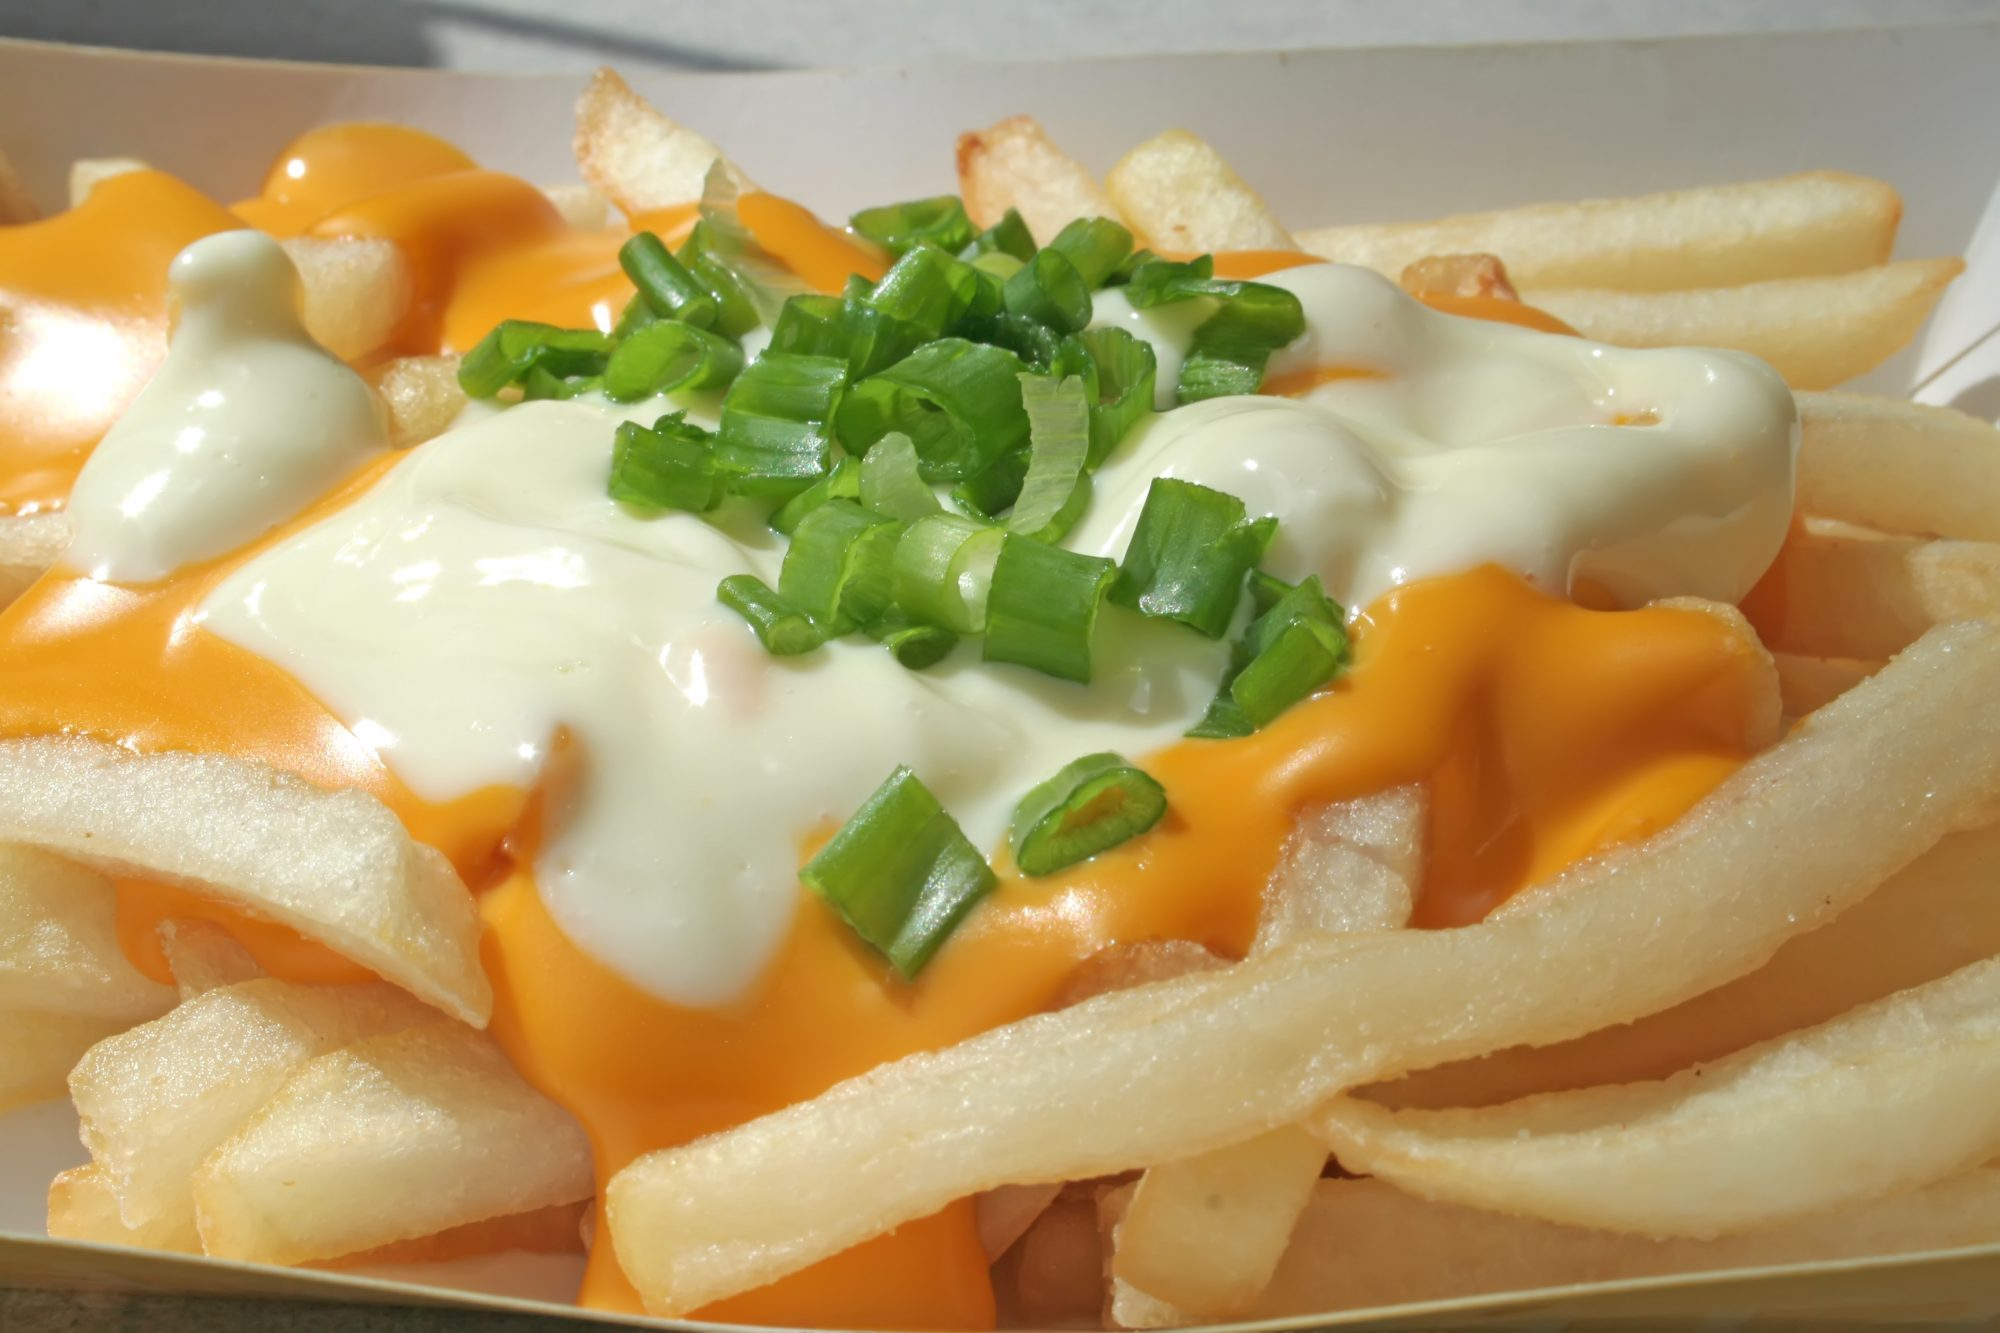 Cheese fries with ranch dressing